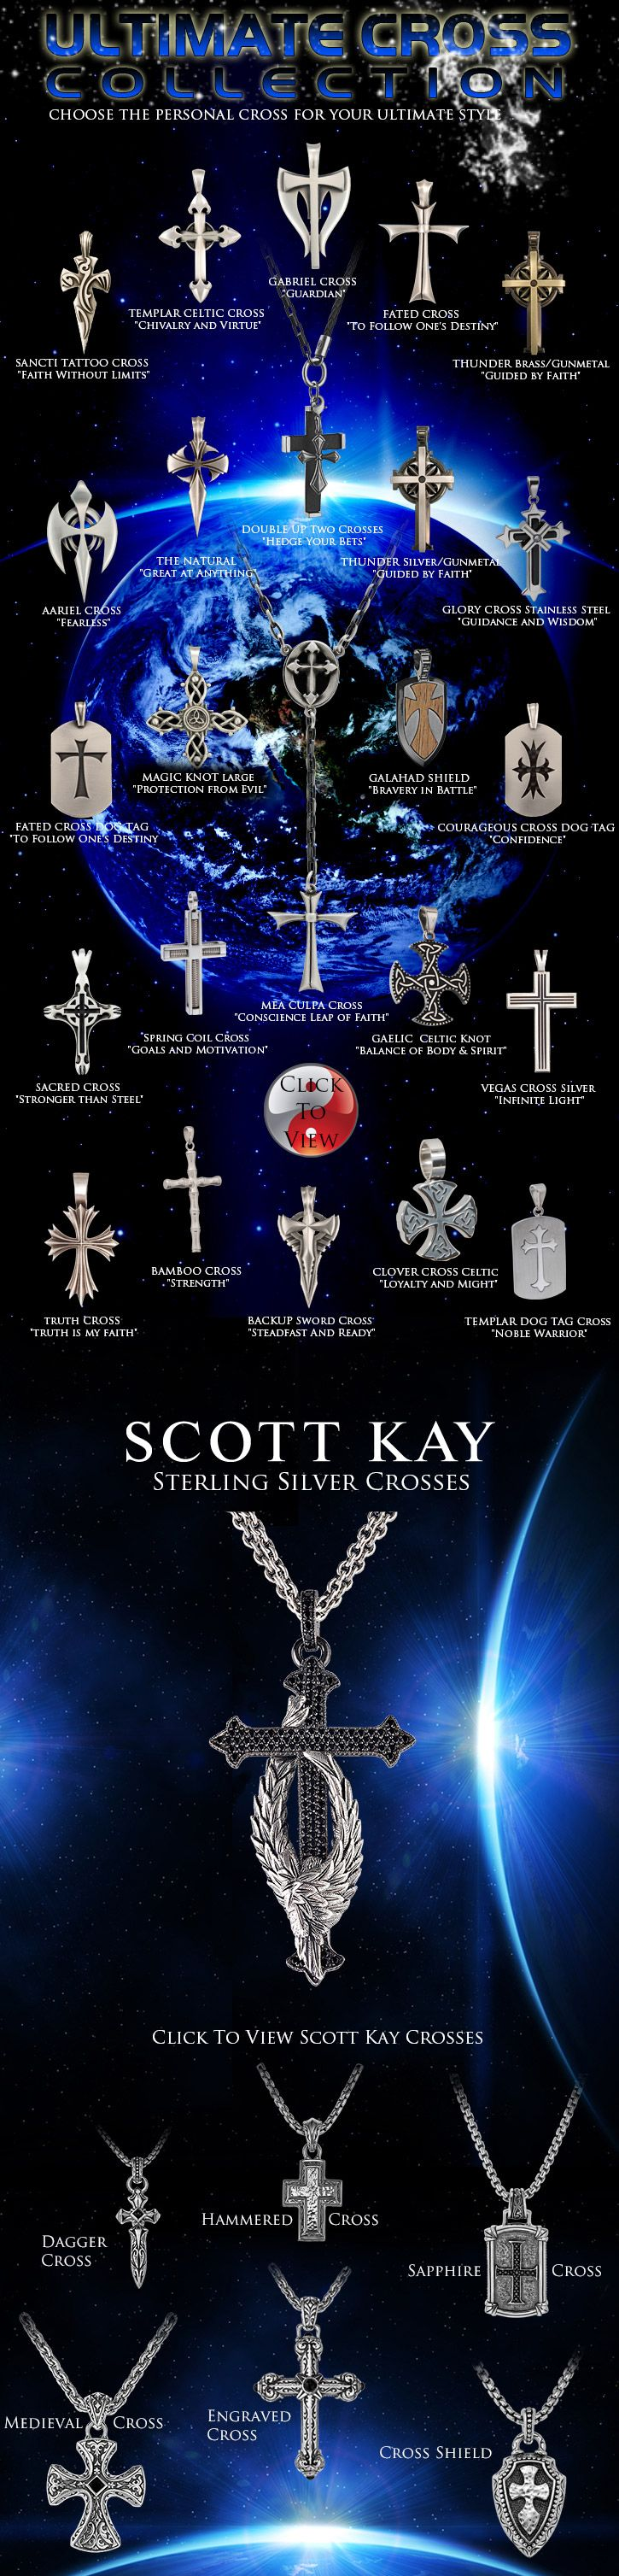 An awesome assortment of admirable crosses for men to wear.